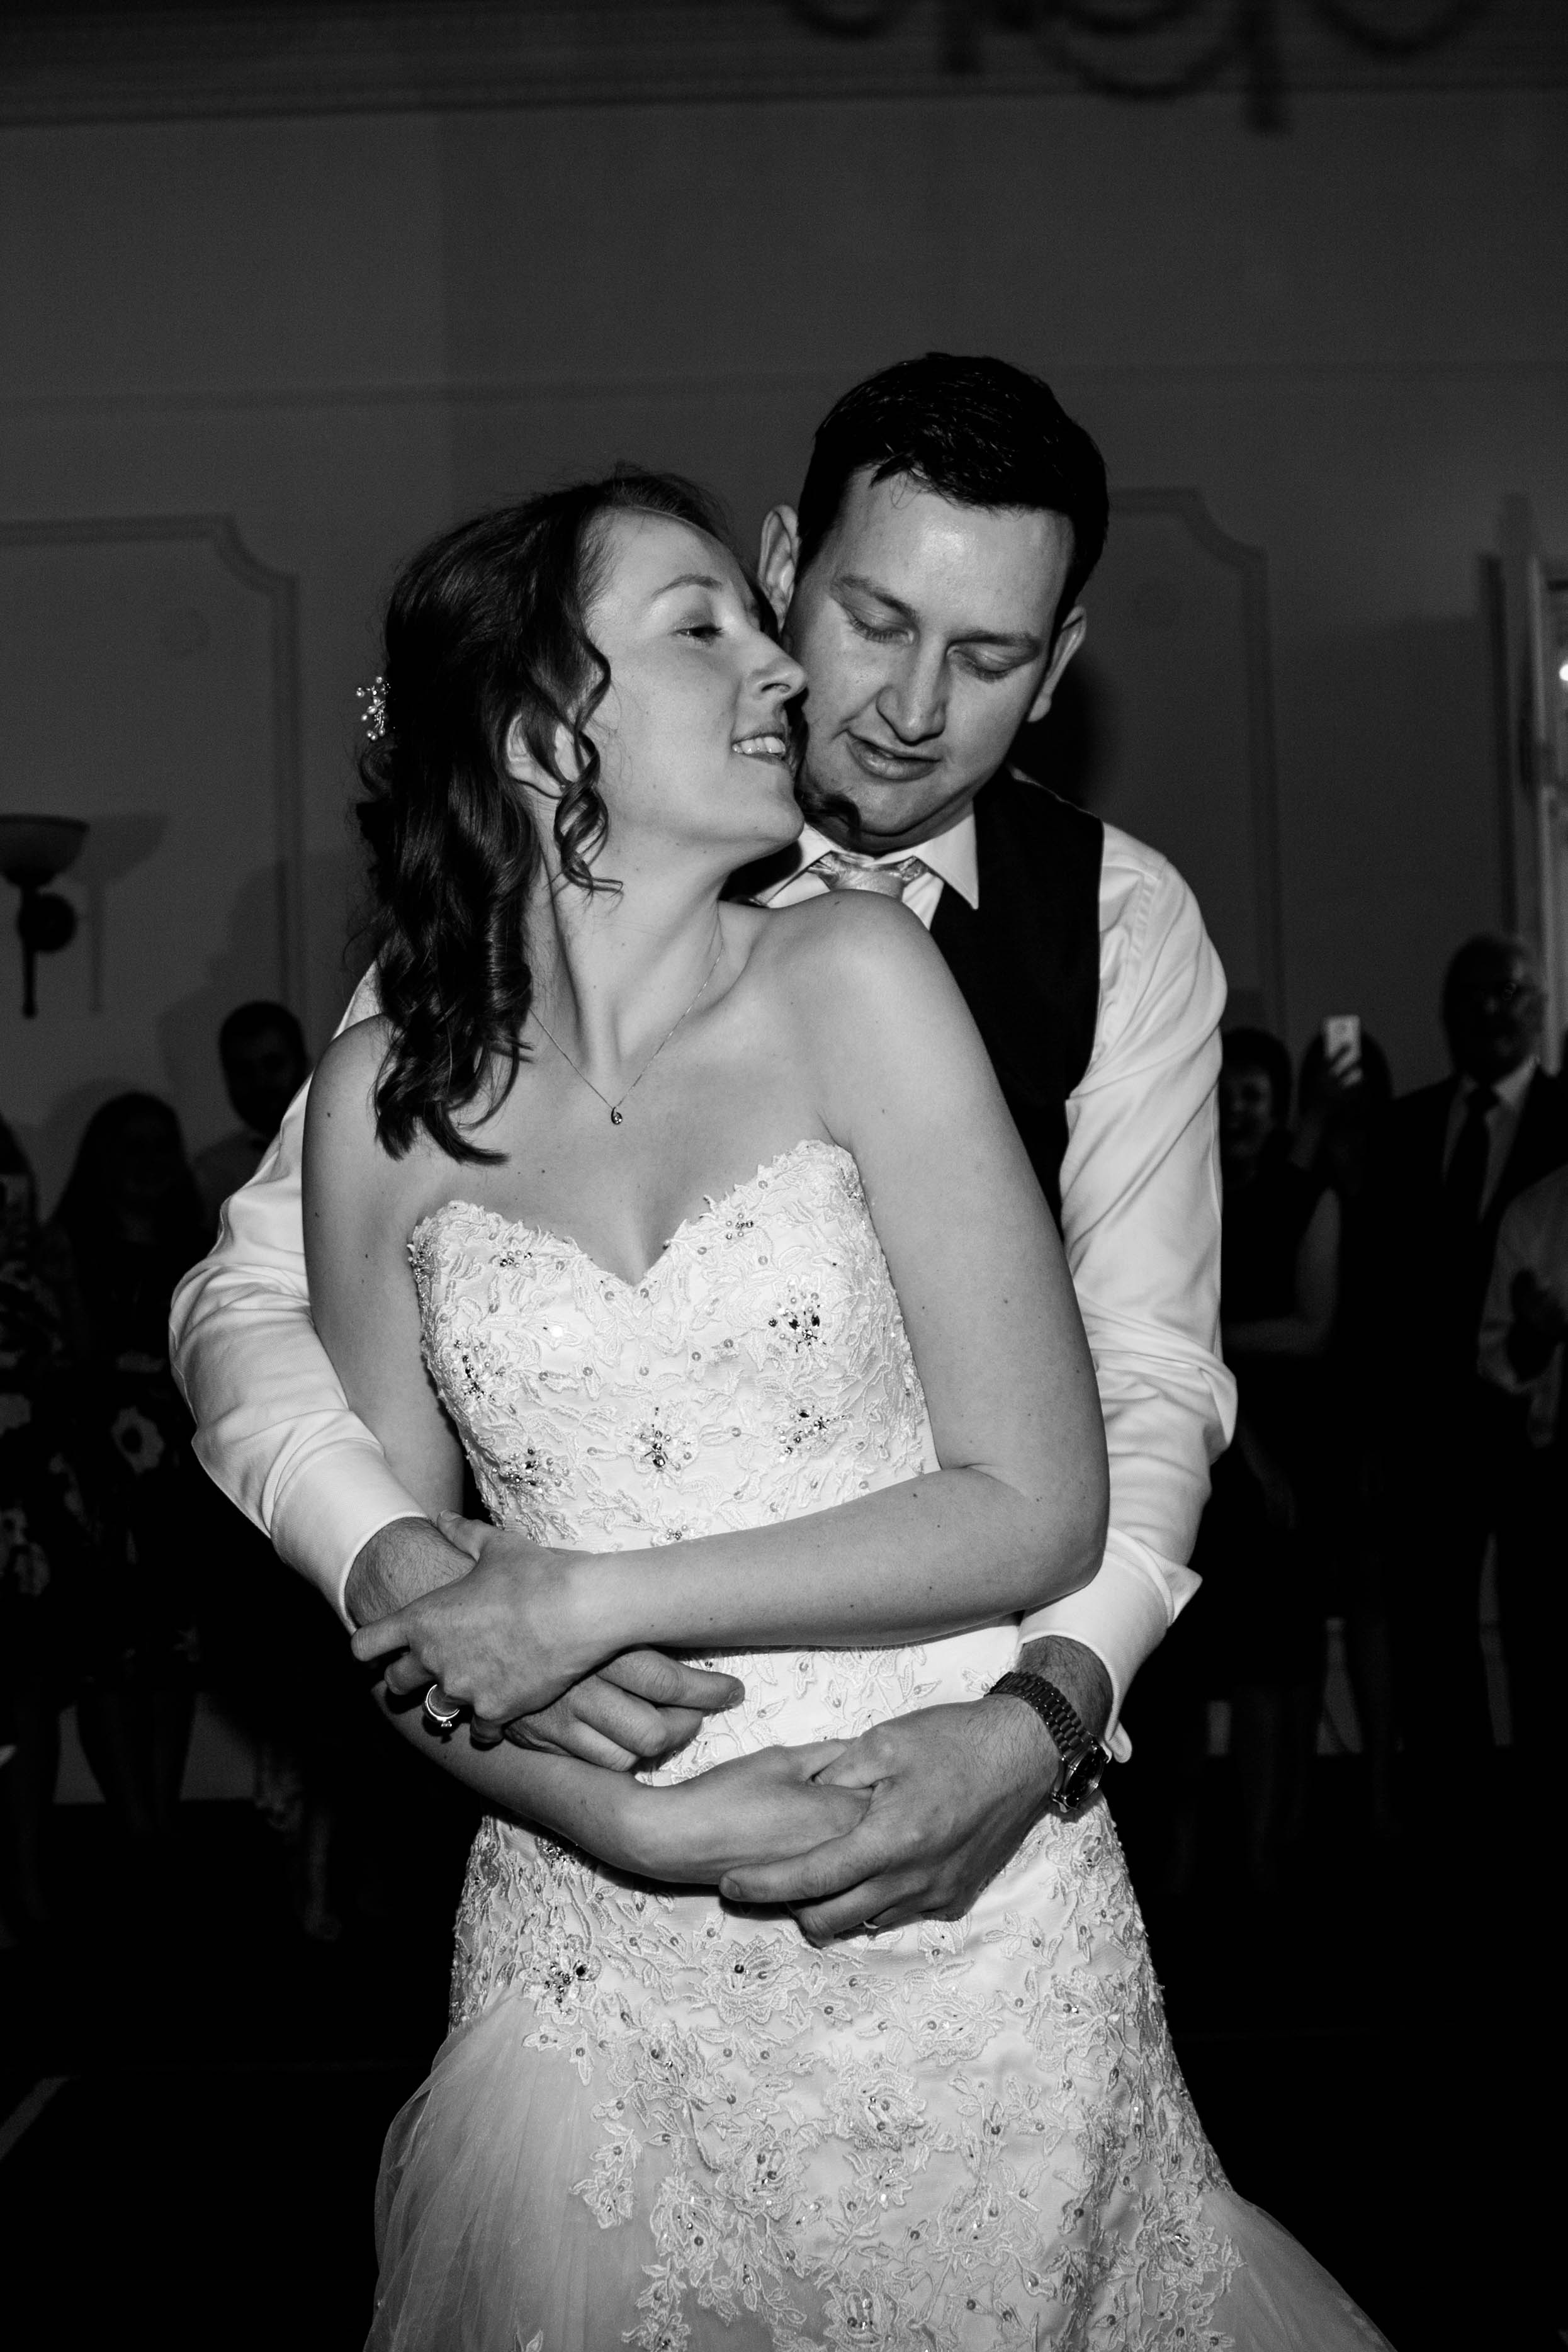 NLPhotography_Taplow_House-Wedding_Photographer_Emily&Alan_BnW-548.jpg